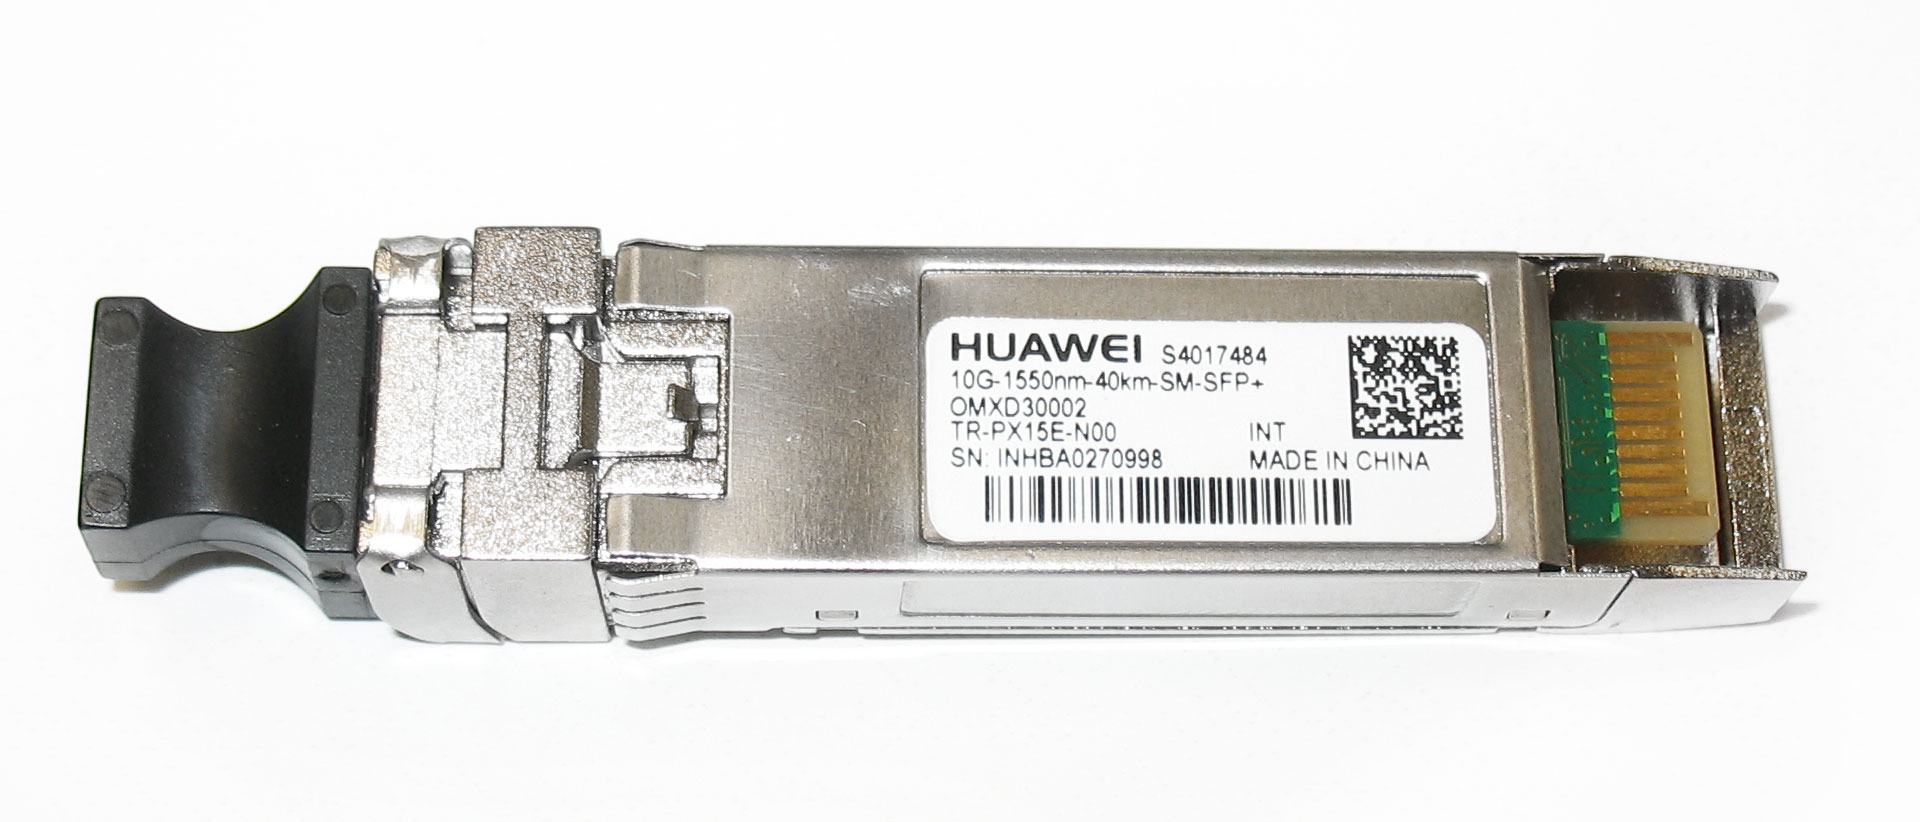 HUAWEI OMXD30002 S4017484